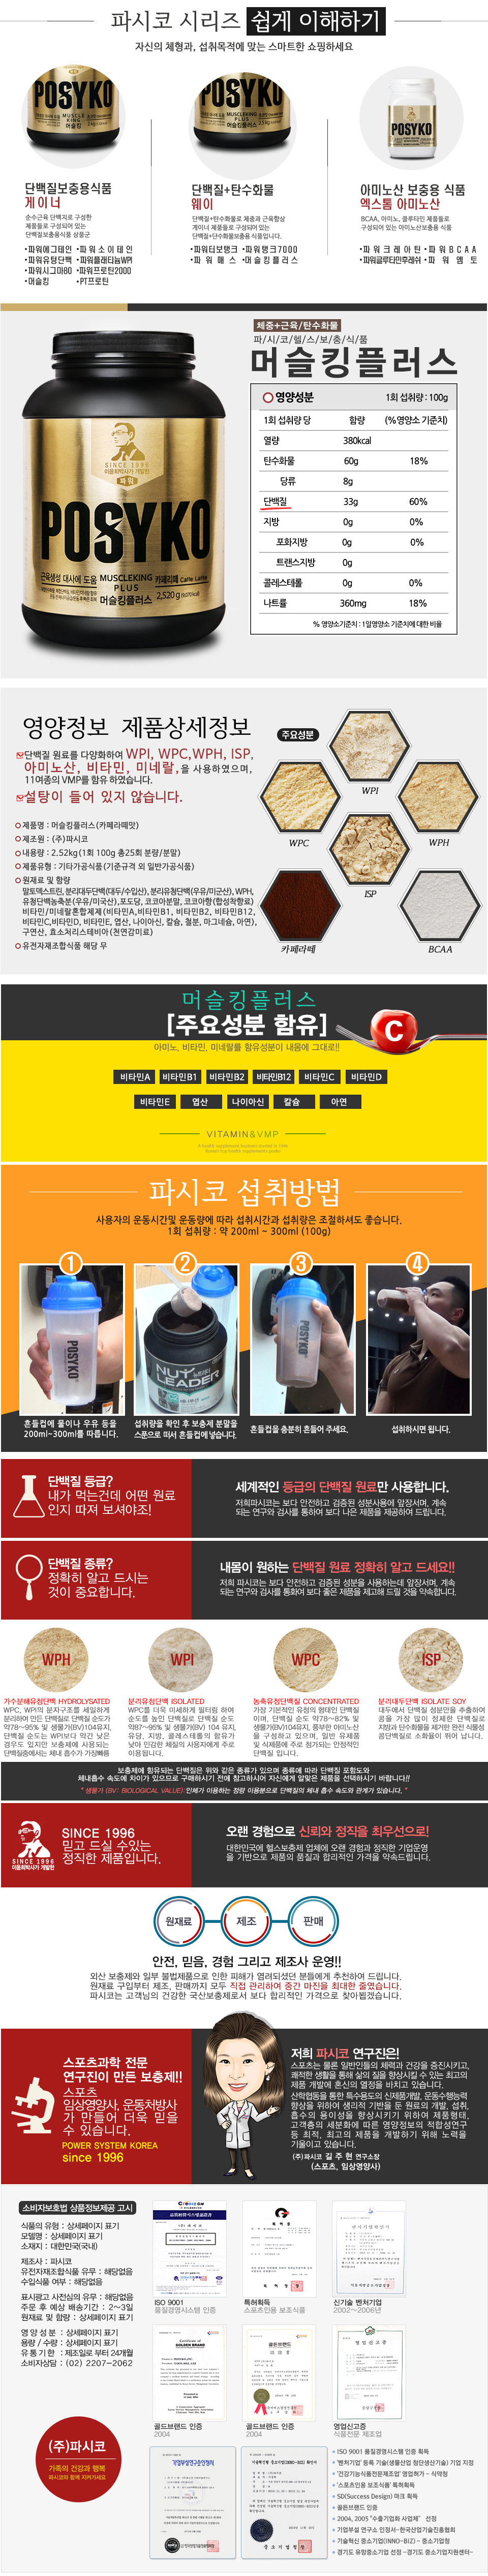 [ etc ] Muscleking Plus Cafelattetaste 2.52Kg (Weight Training) Protein Supplement/Health Supplement/Shaker Included